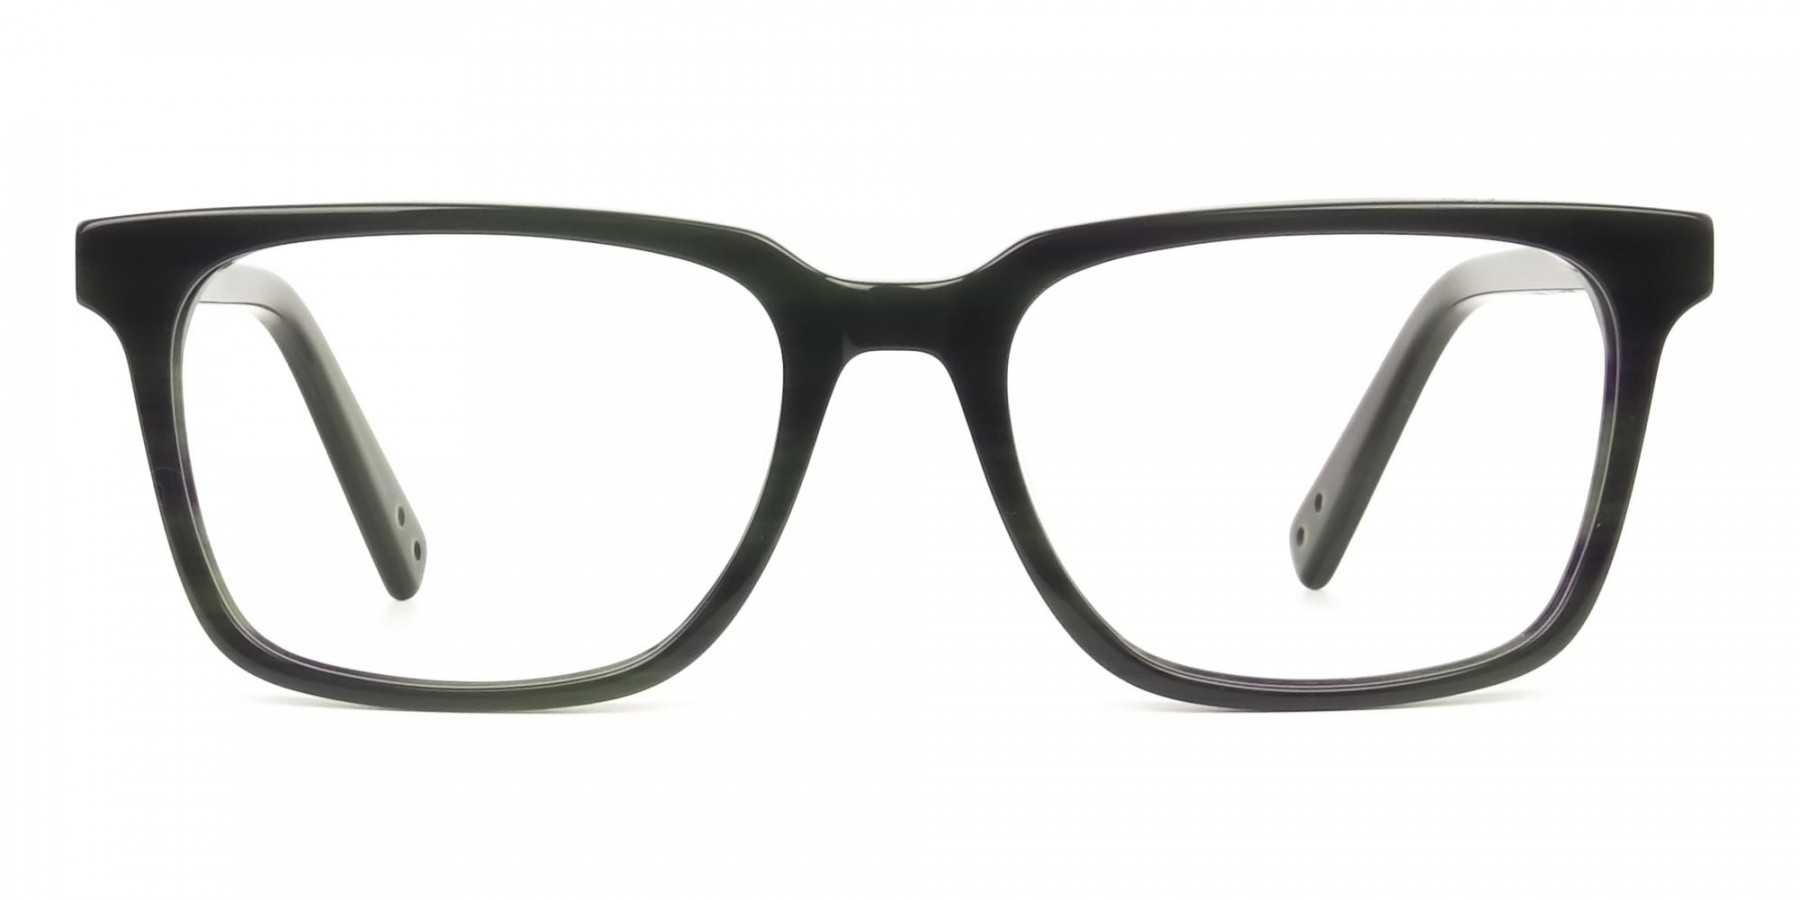 Handcrafted Dark Navy Thick Acetate Glasses in Rectangular - 1